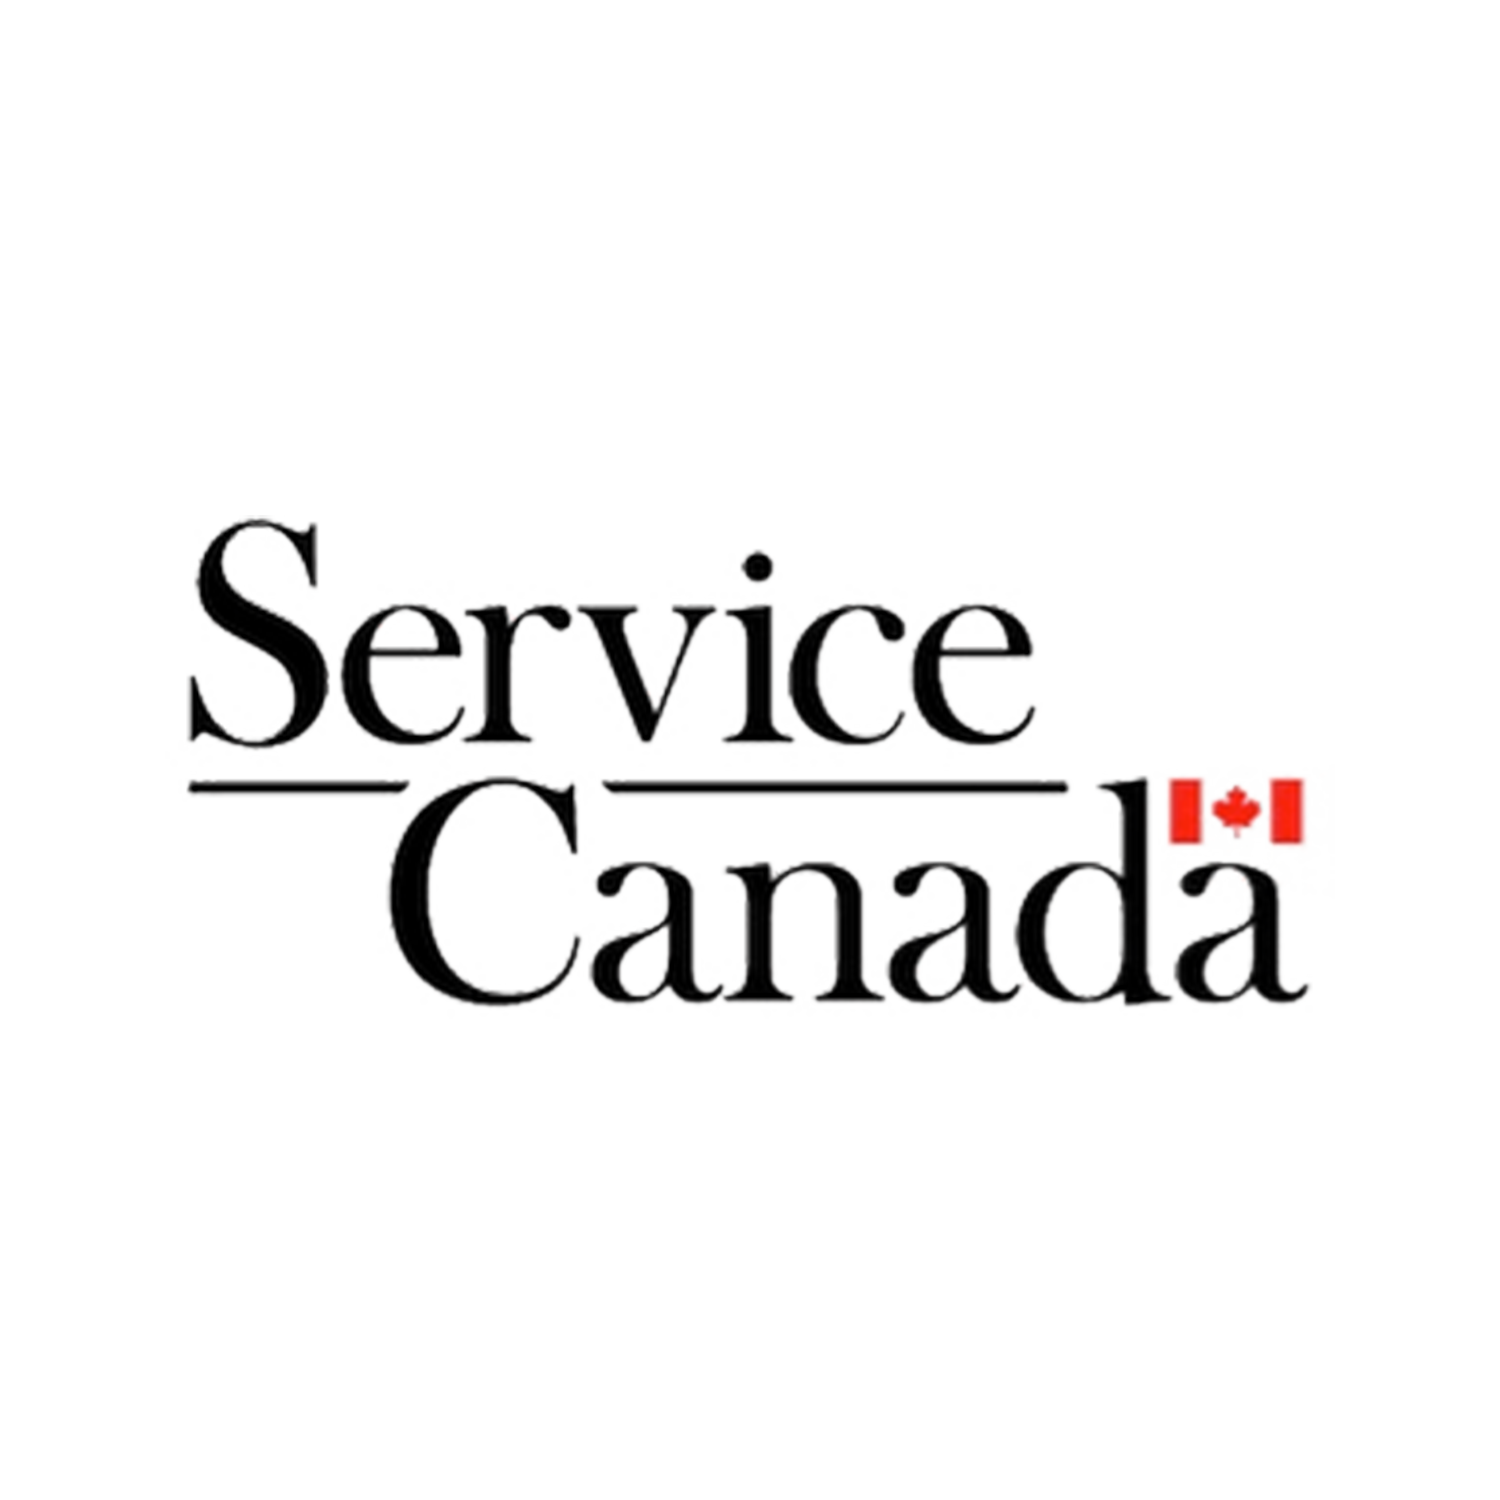 Service Canada.png